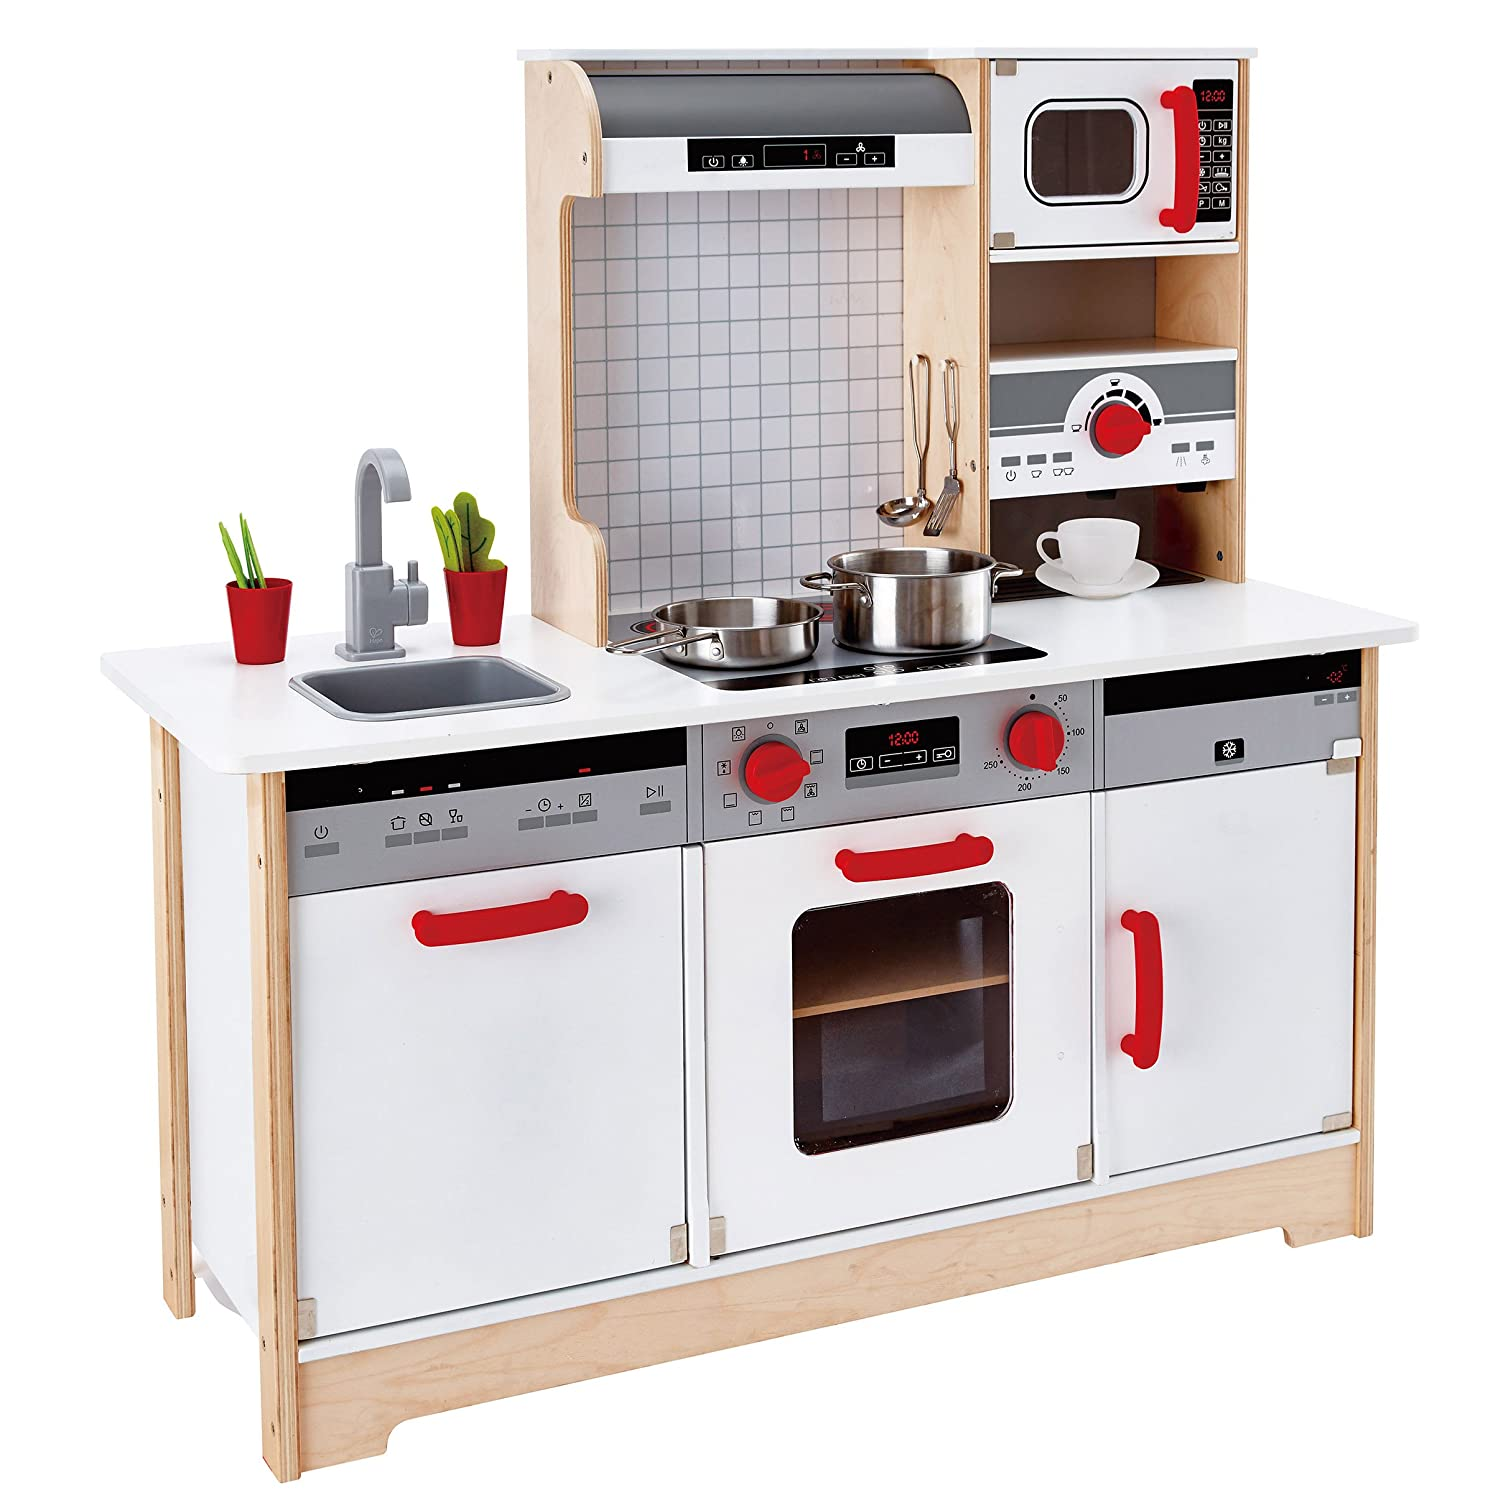 Hape E3145 All-in-One Kitchen: Amazon.co.uk: Toys & Games